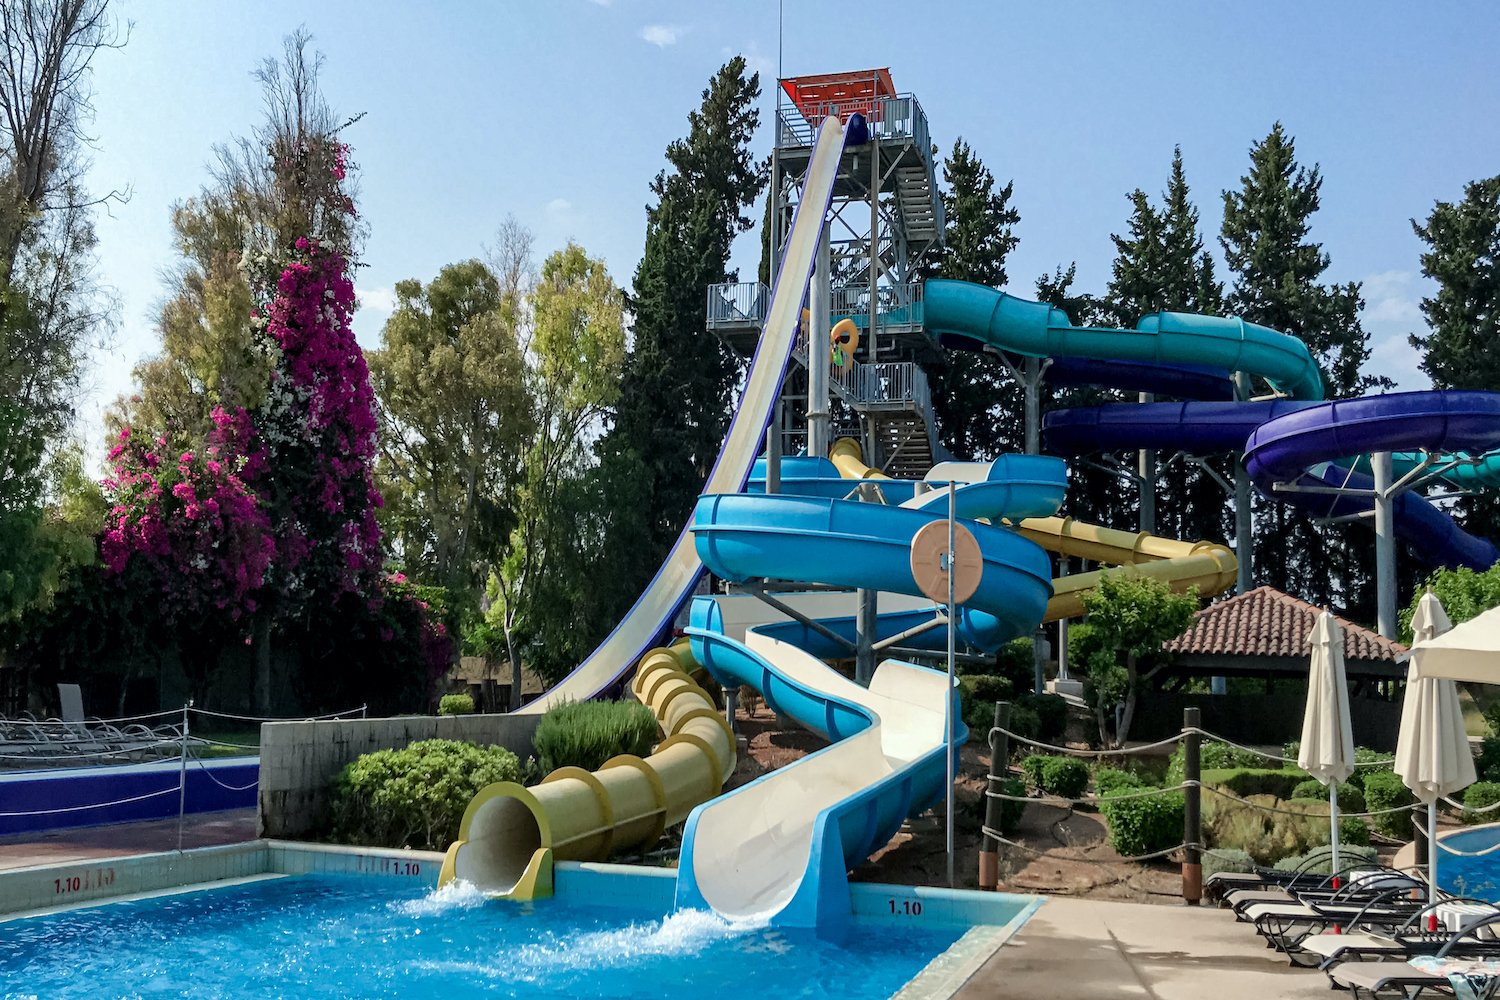 water park rides example image 1